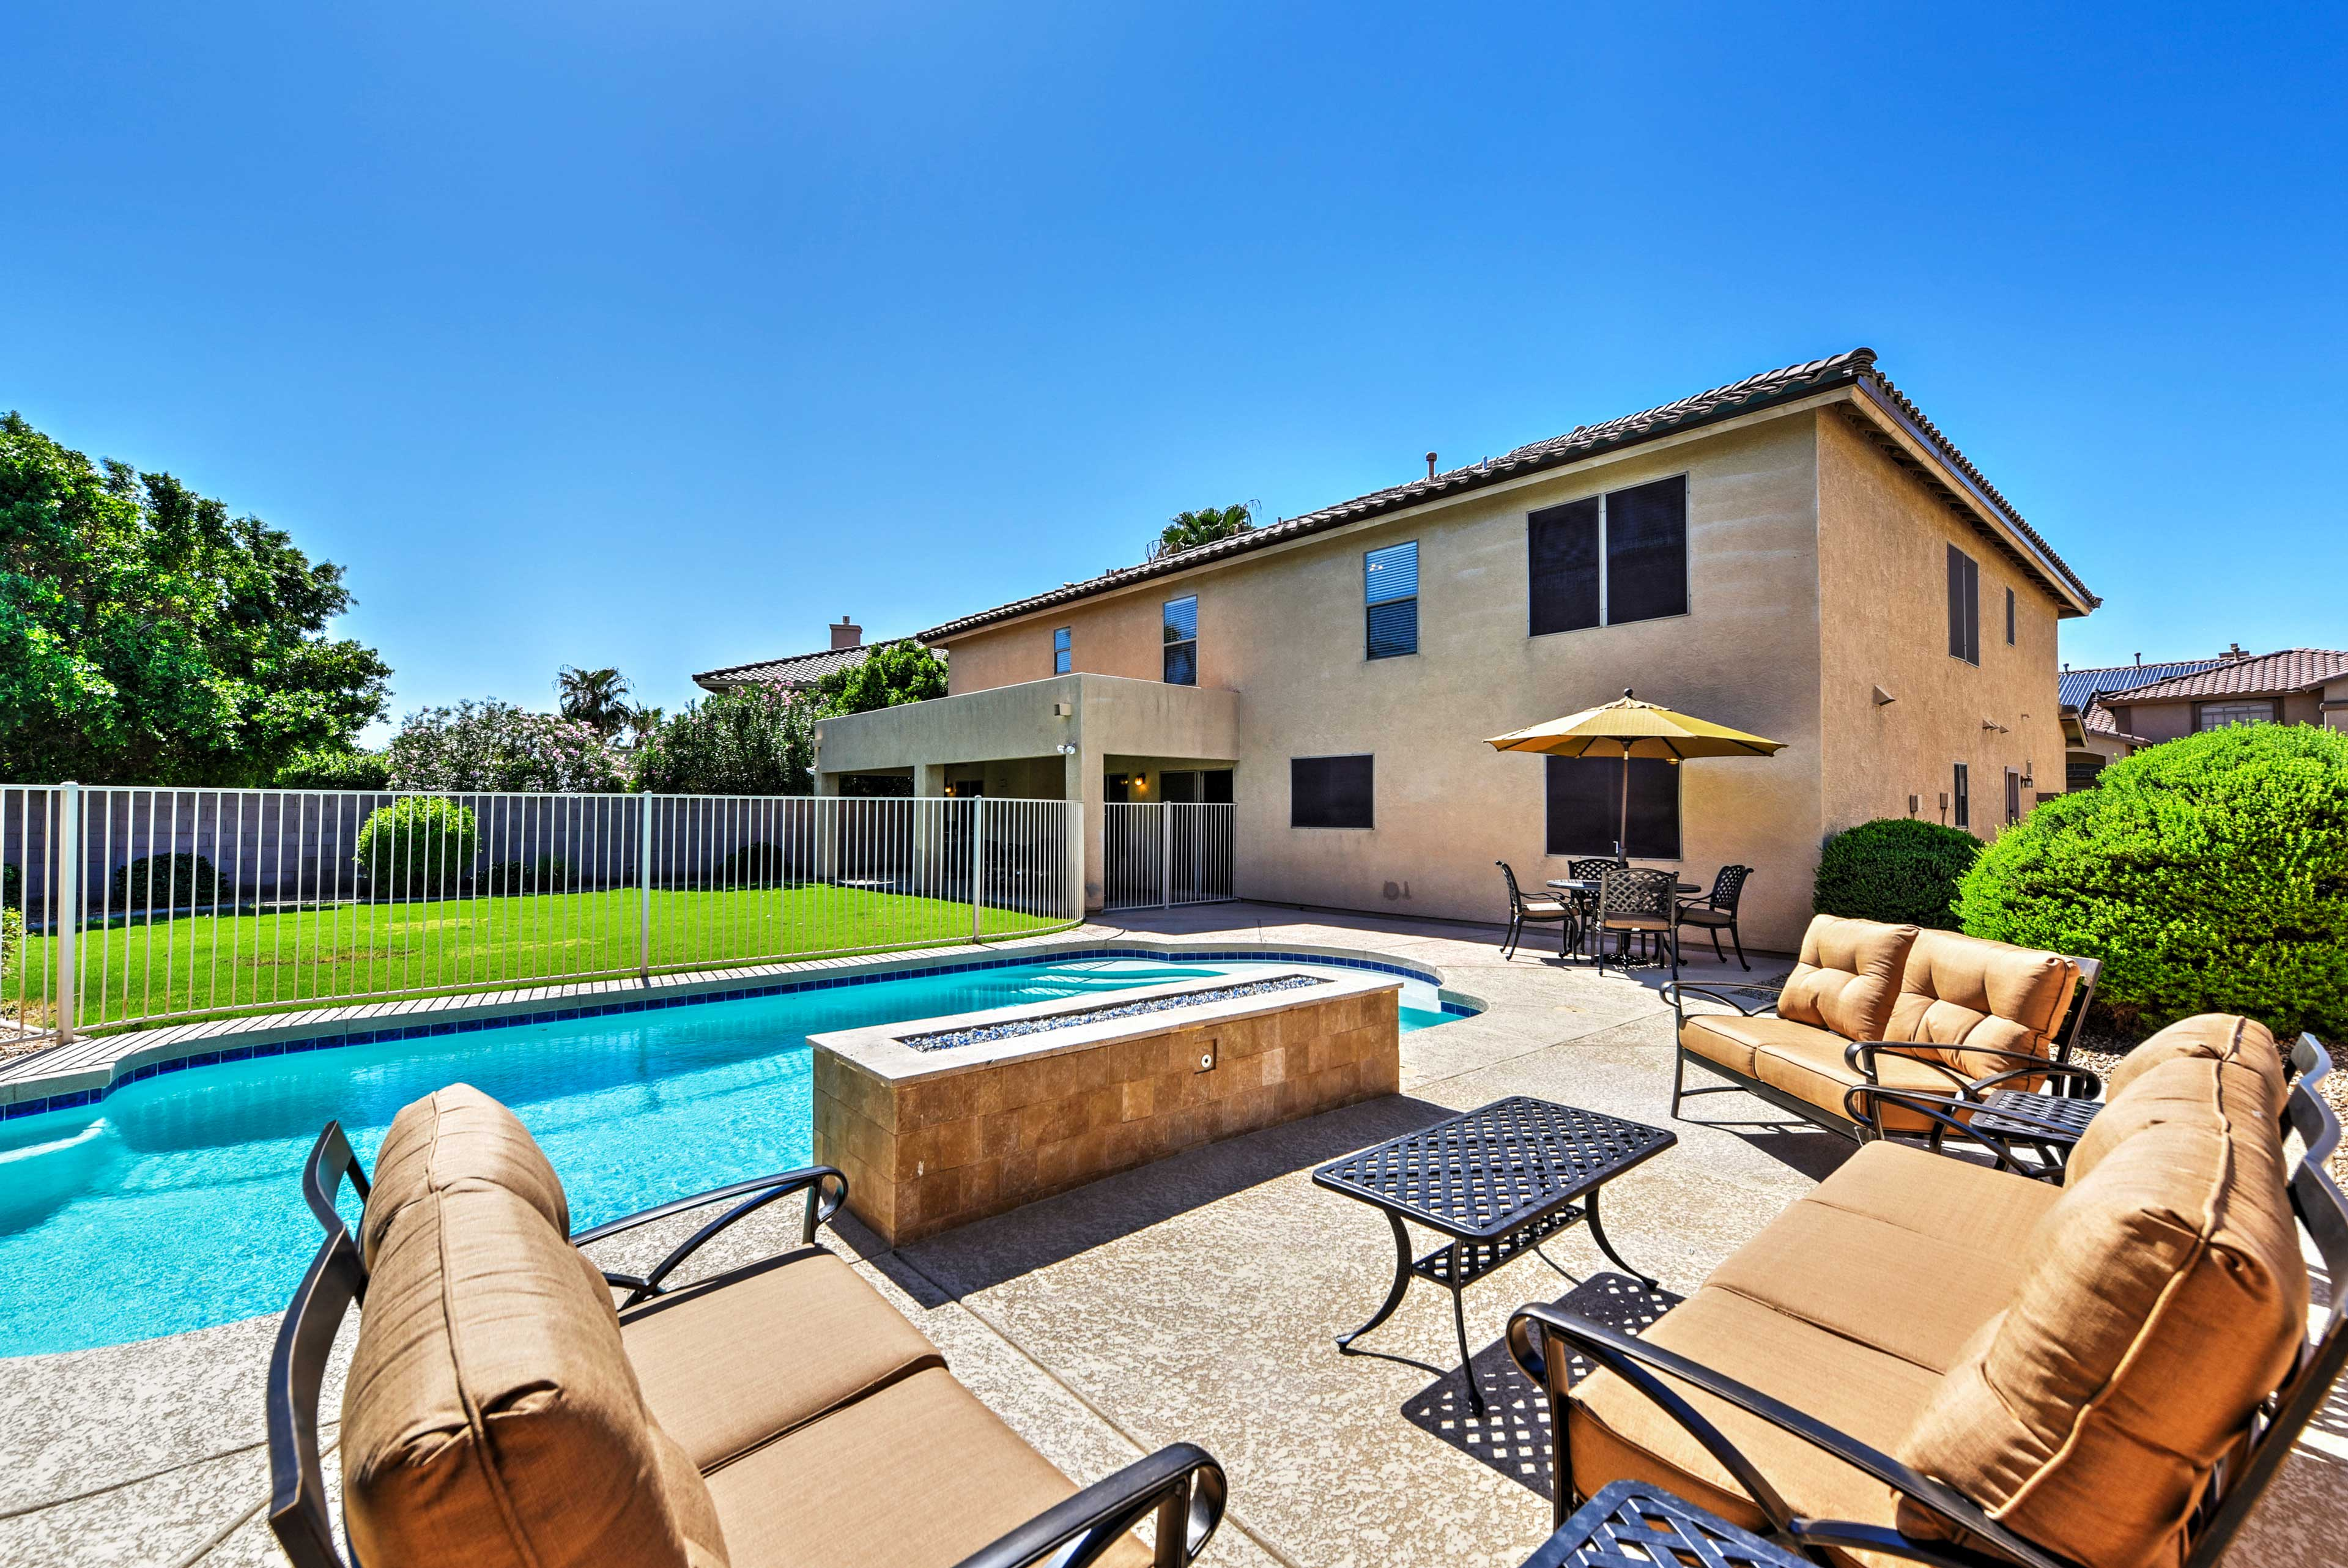 Lounge by the private pool while staying at this 5-bed vacation rental home!